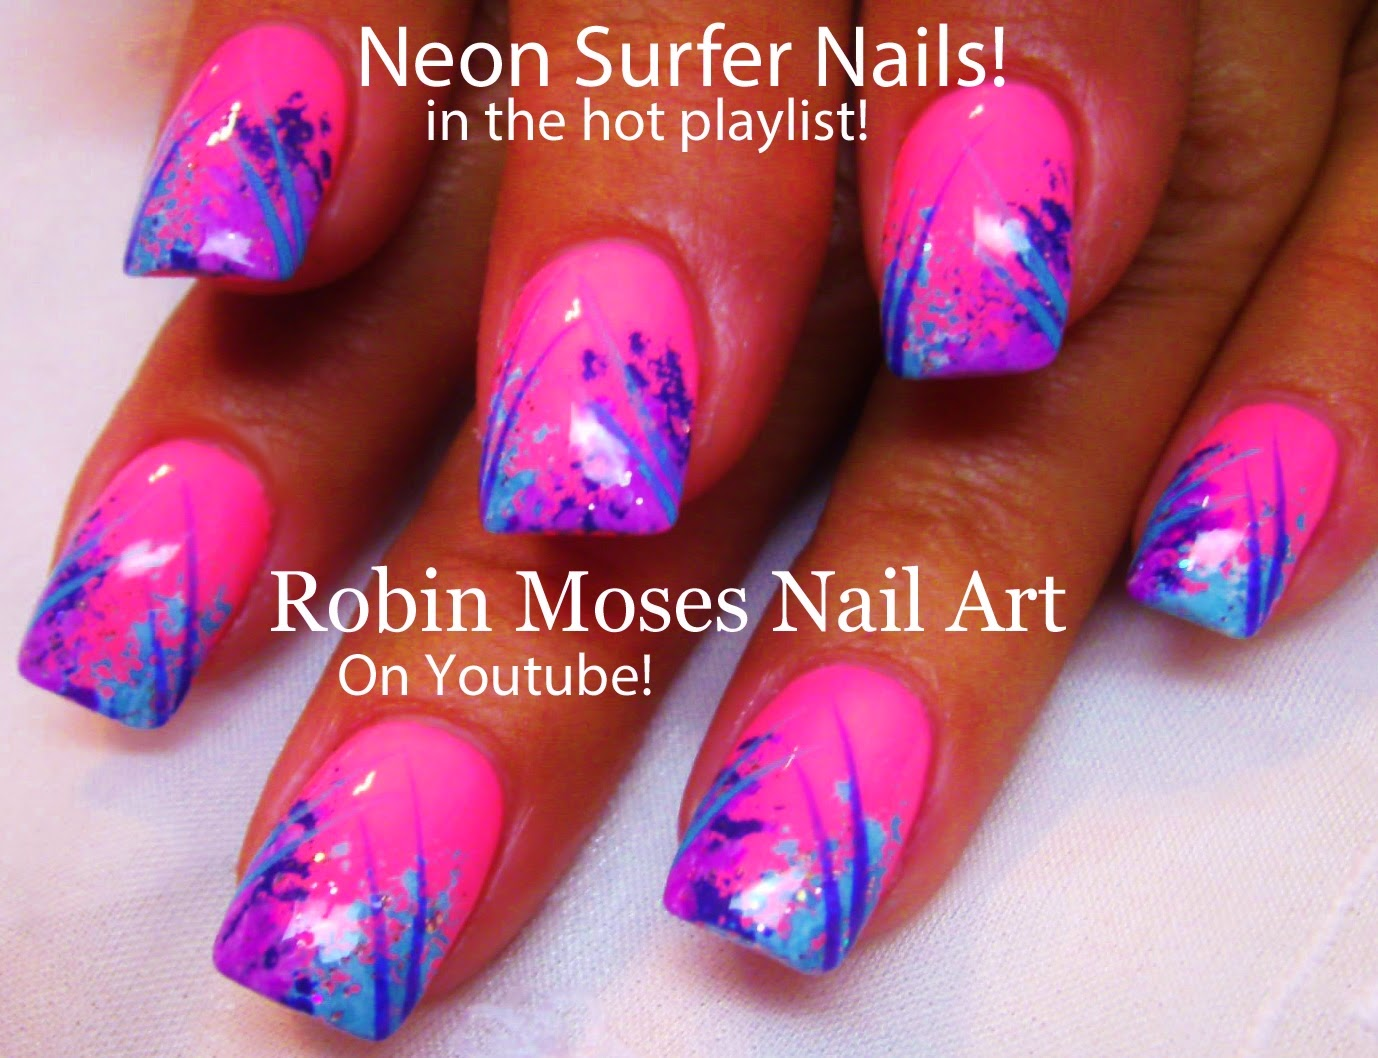 Neon Nails Pink Nail Art Sponge Surfer Summer Easy Designs Diy